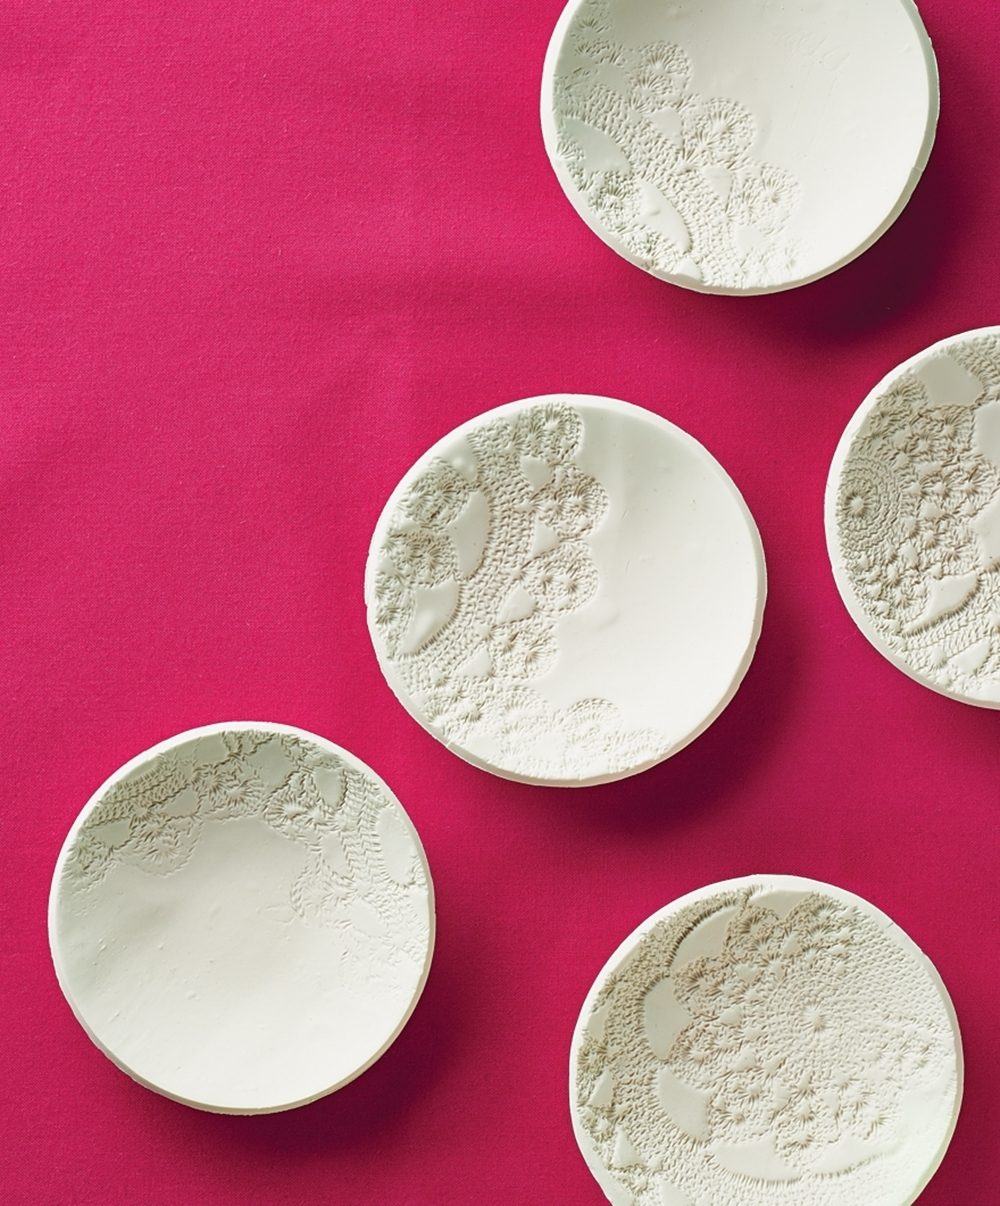 clay bowls with lace impressions